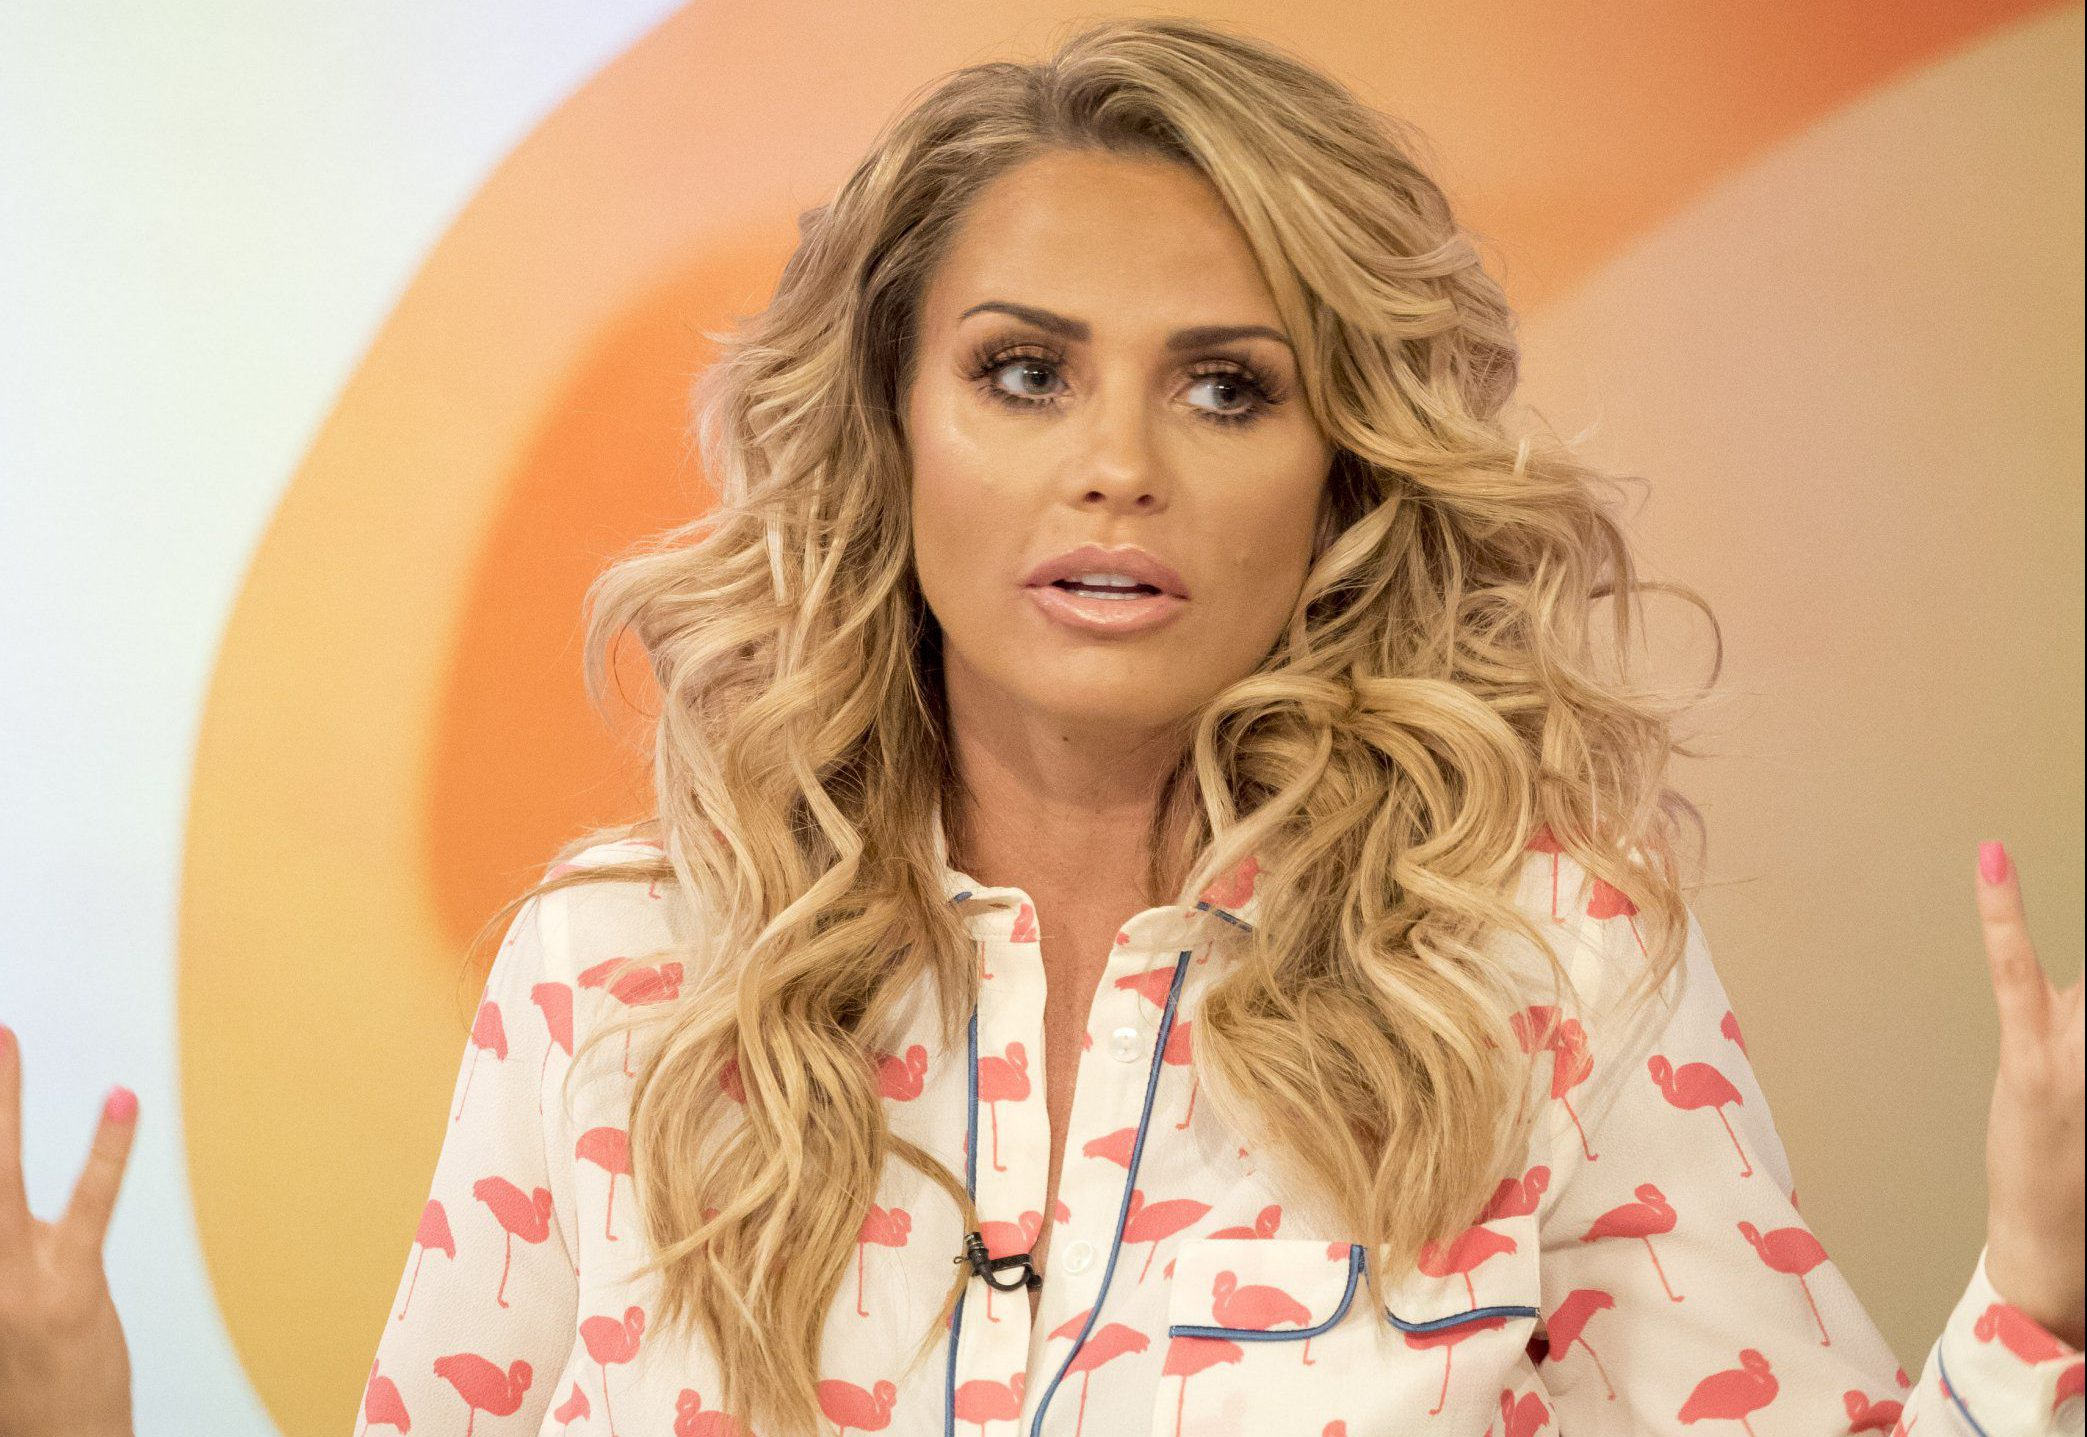 EDITORIAL USE ONLY. NO MERCHANDISING Mandatory Credit: Photo by Ken McKay/ITV/REX/Shutterstock (5685327am) Katie Price 'Loose Women' TV show, London, Britain - 16 May 2016